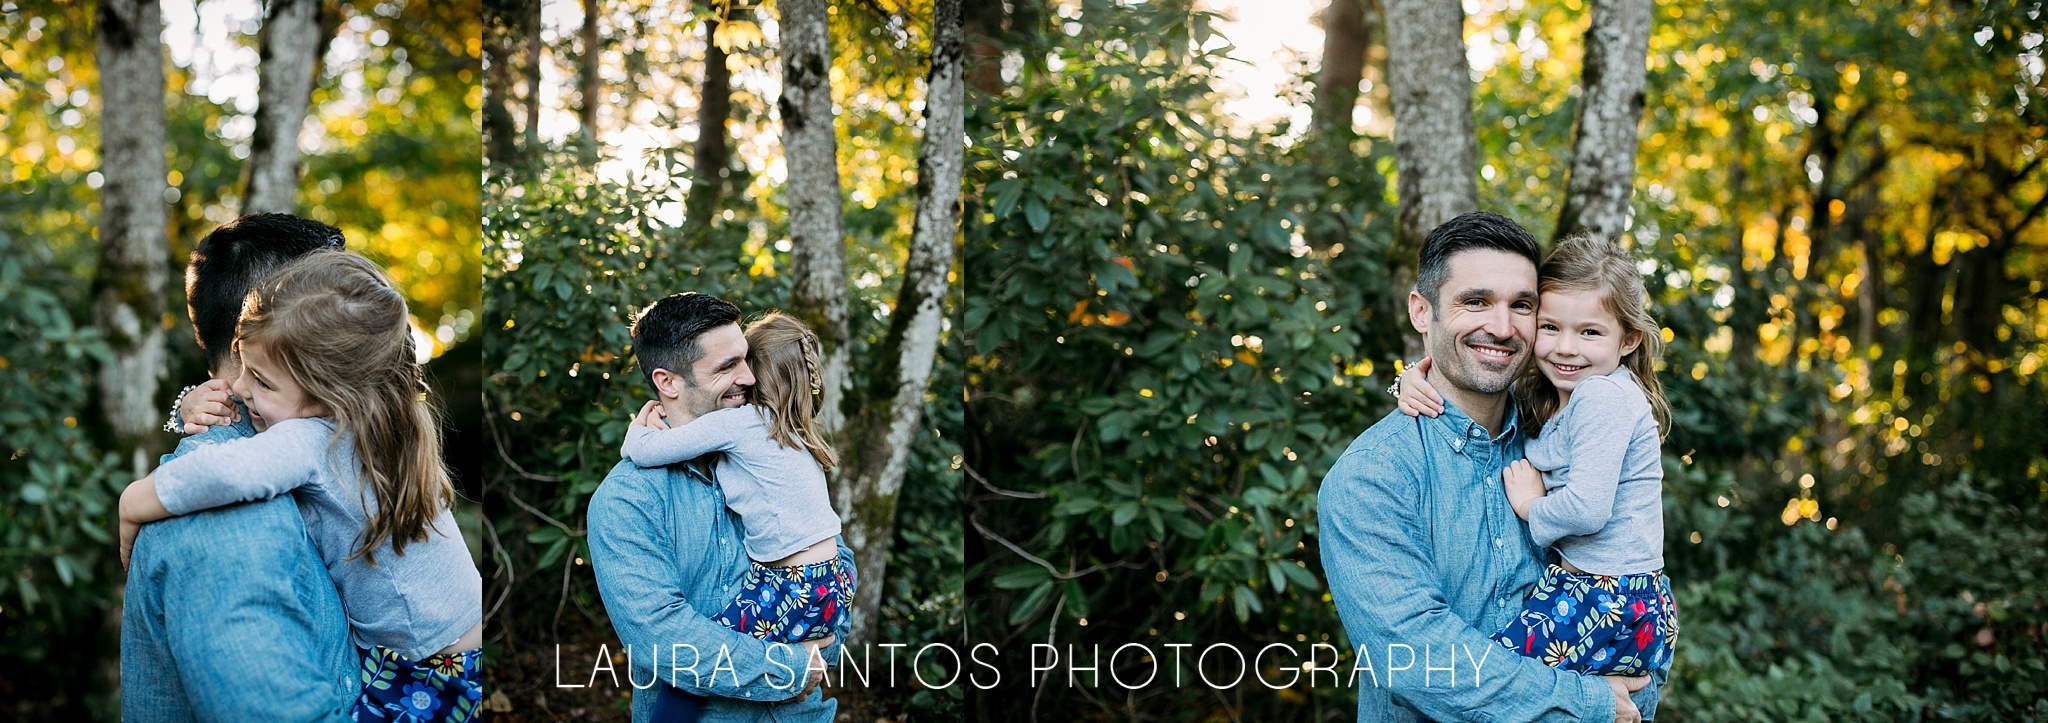 Laura Santos Photography Portland Oregon Family Photographer_0088.jpg